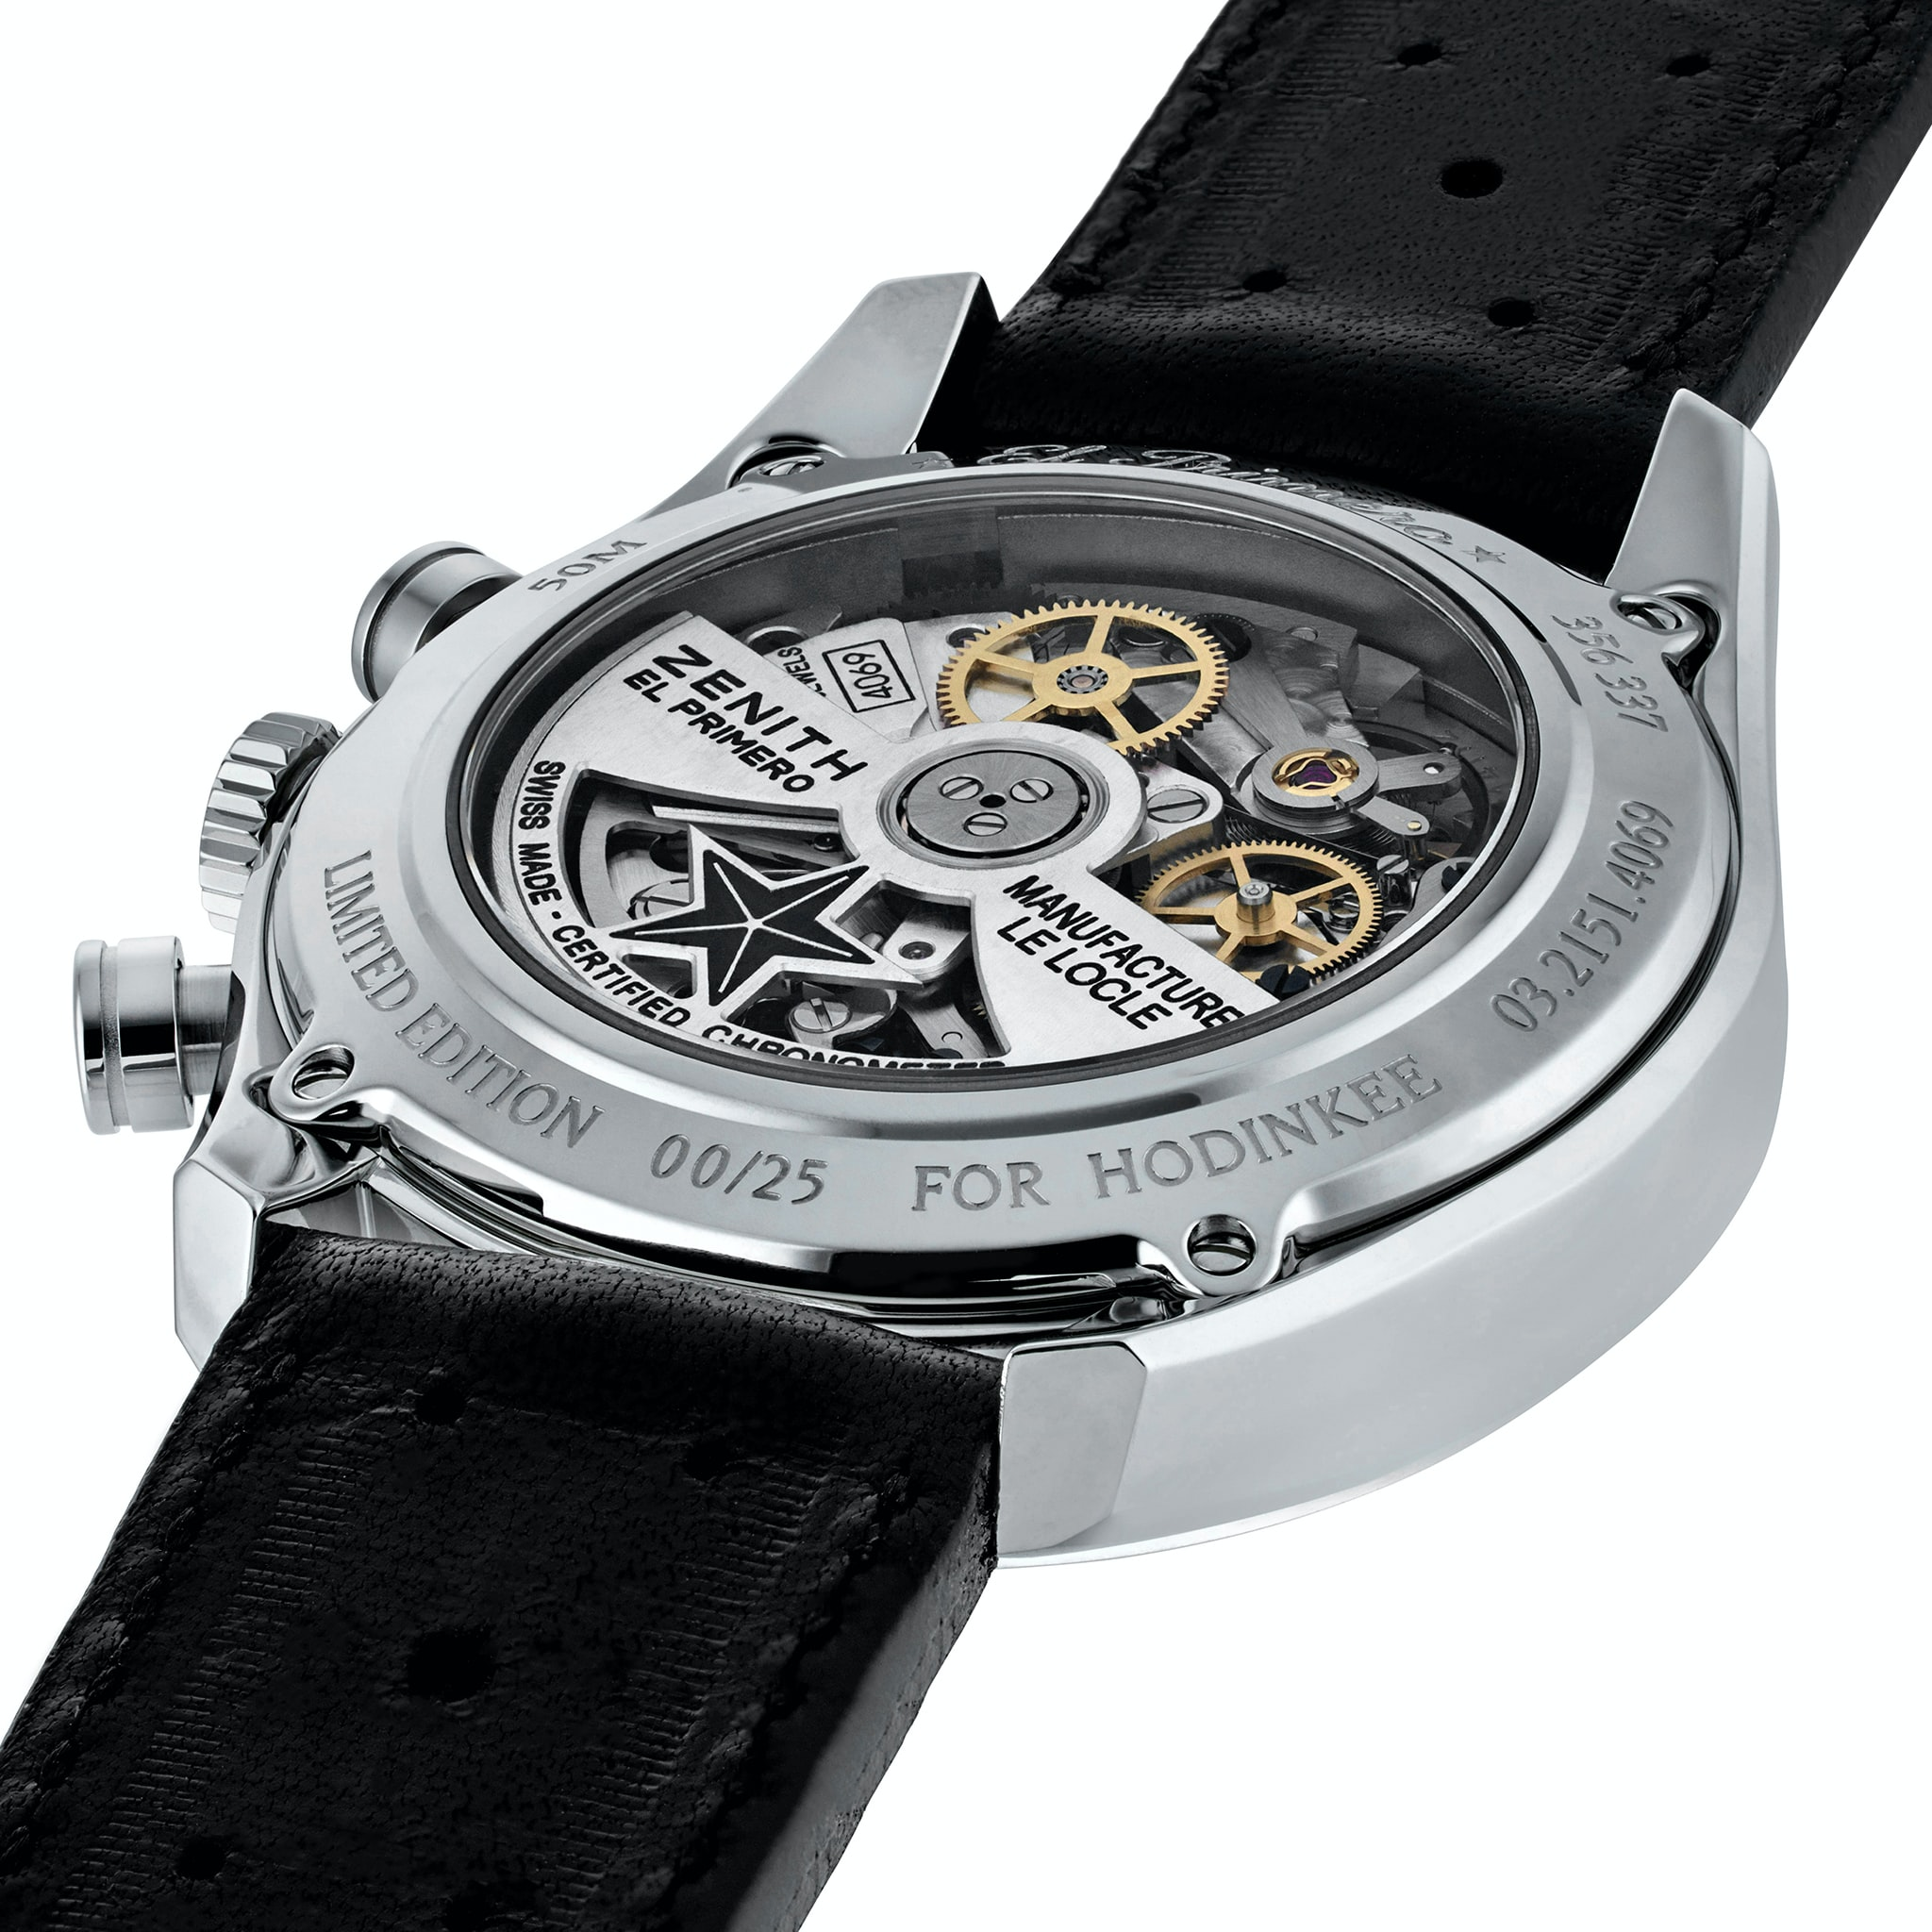 Zenith Caliber 4069 For HODINKEE